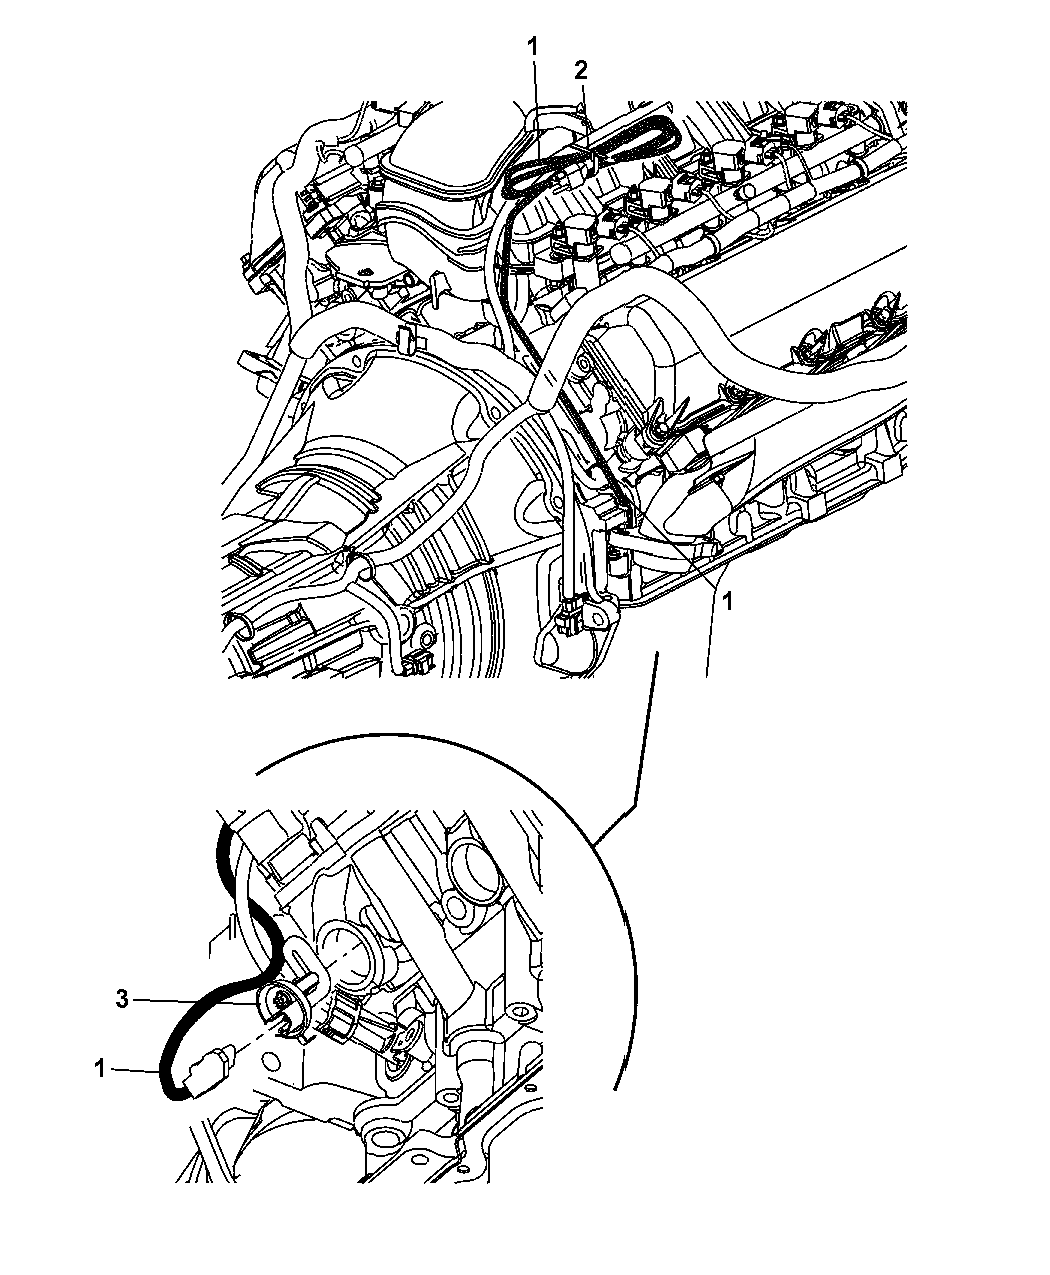 Bestseller: 2007 Jeep Liberty Engine Diagram